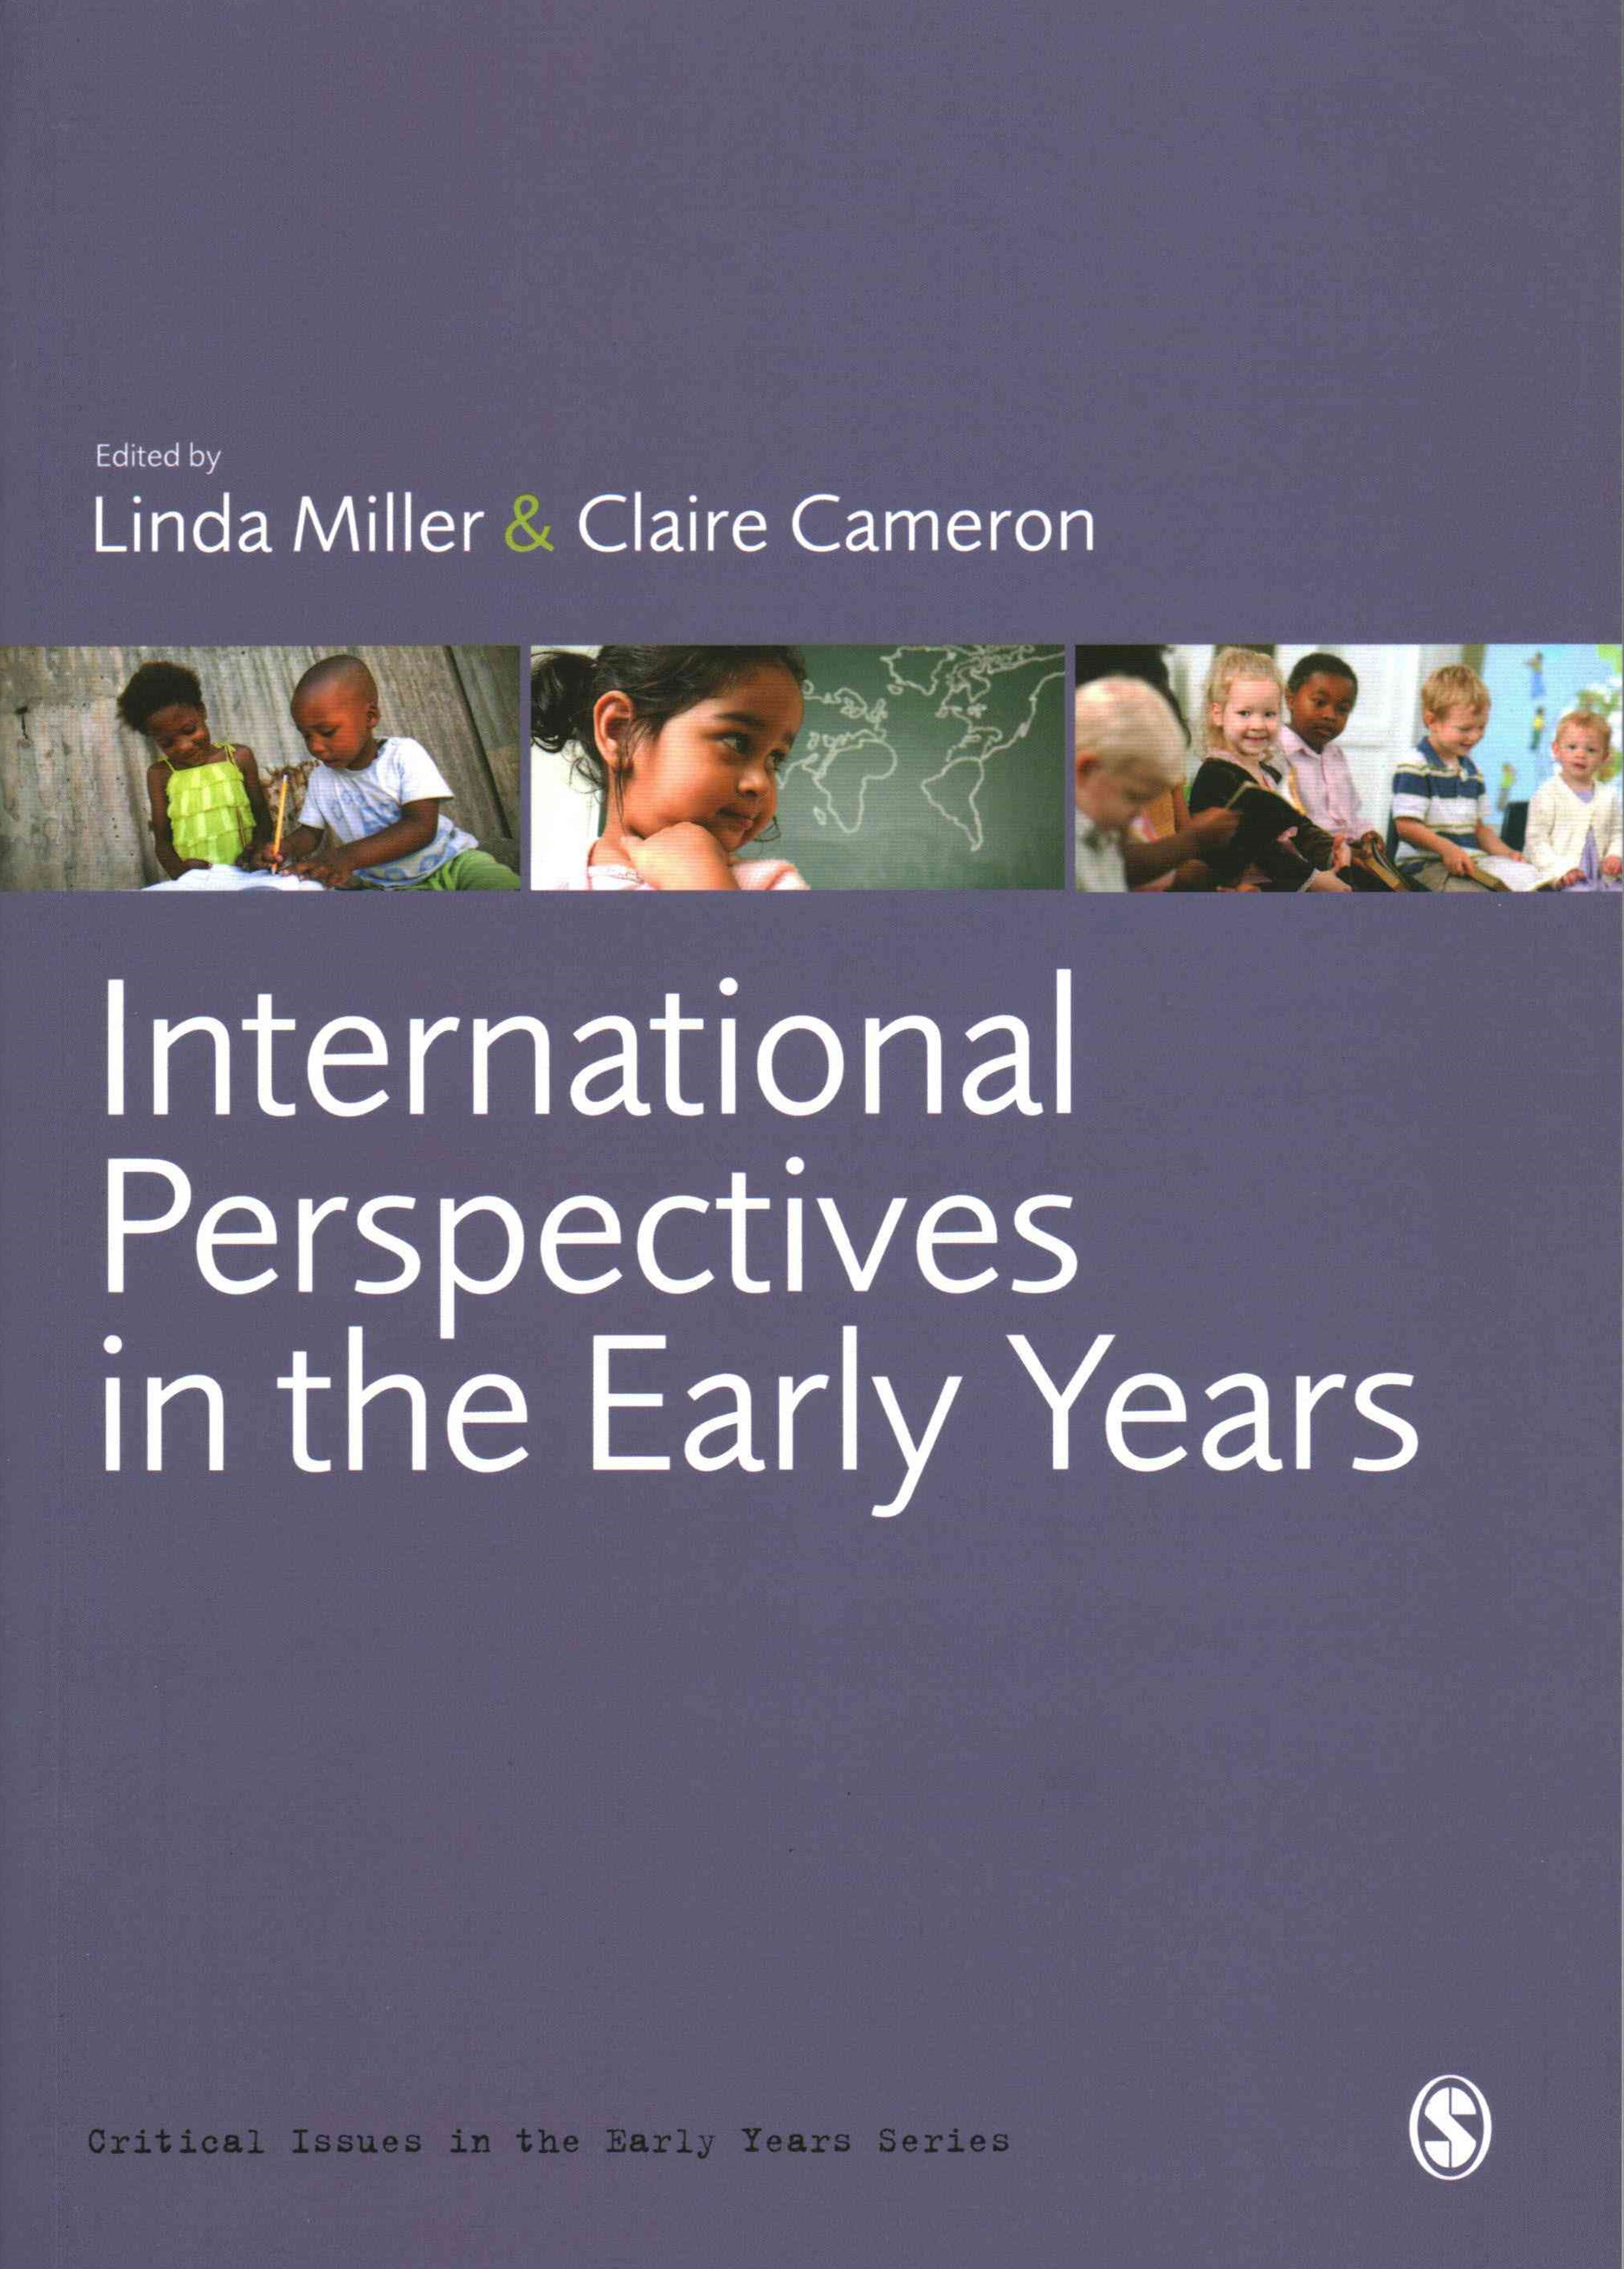 International Perspectives in the Early Years